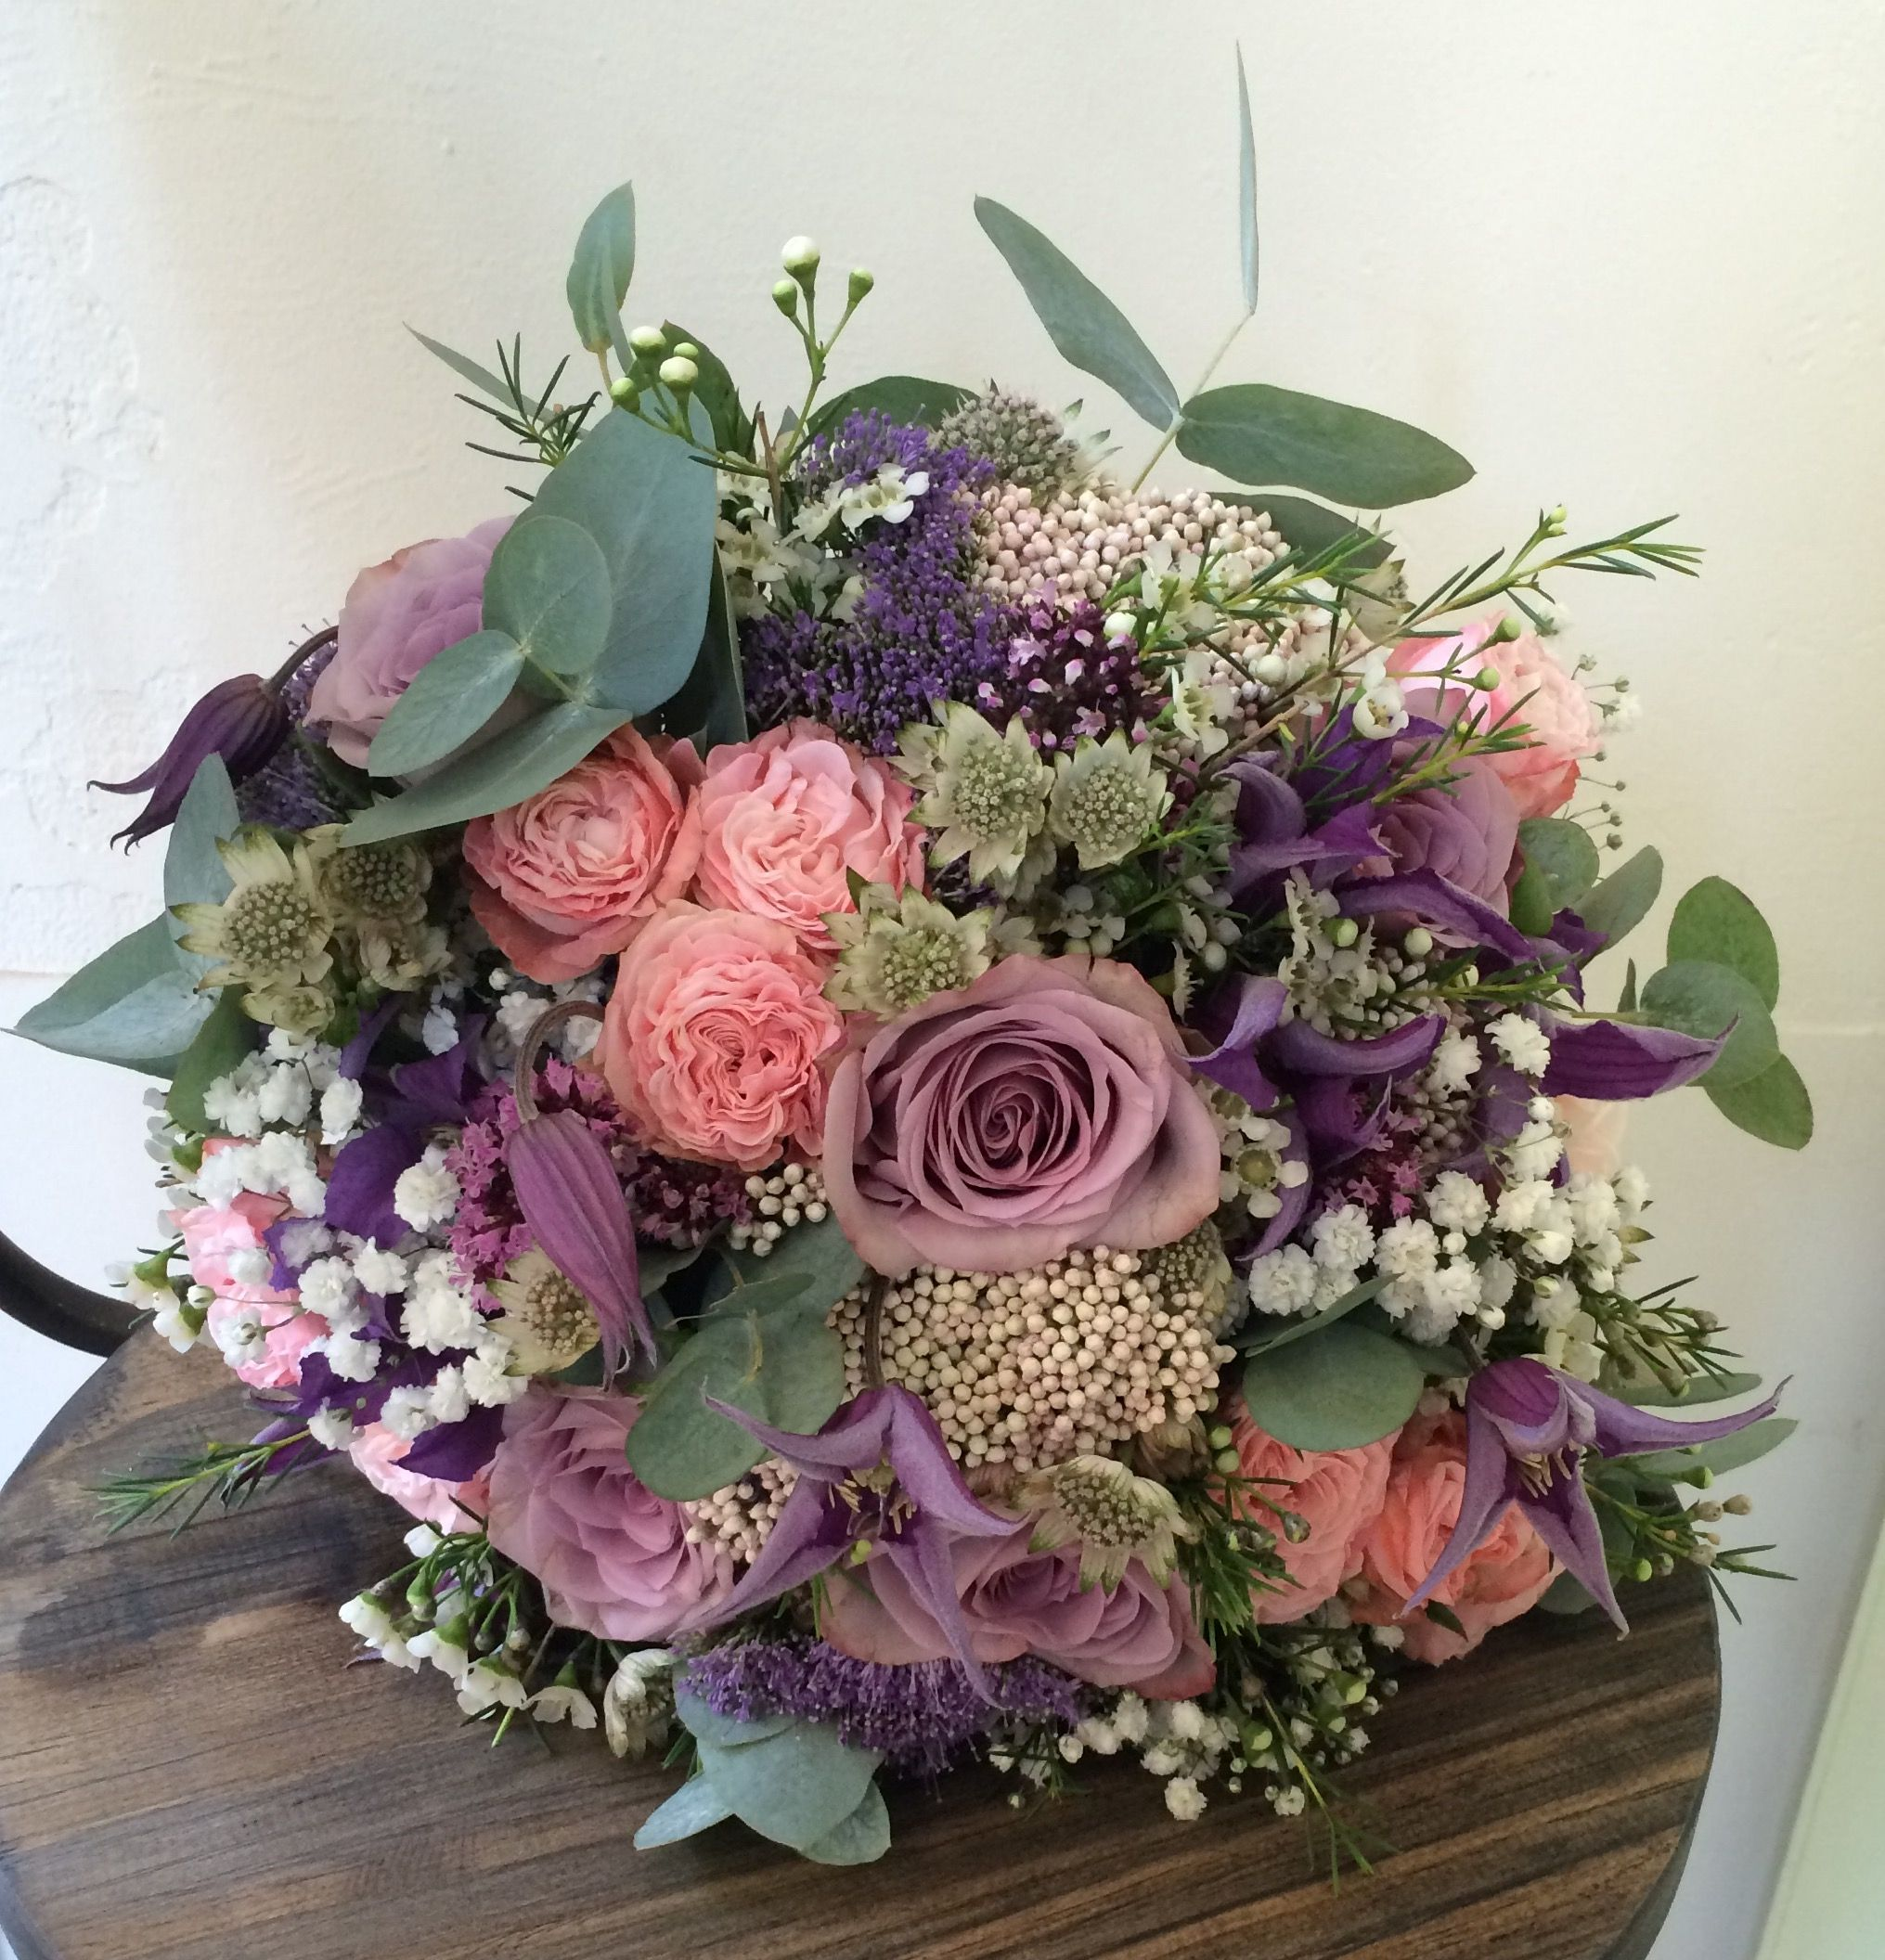 Gorgeous Bridal Bouquet Mixed Flowers And Textures Mauve Purple Grey C